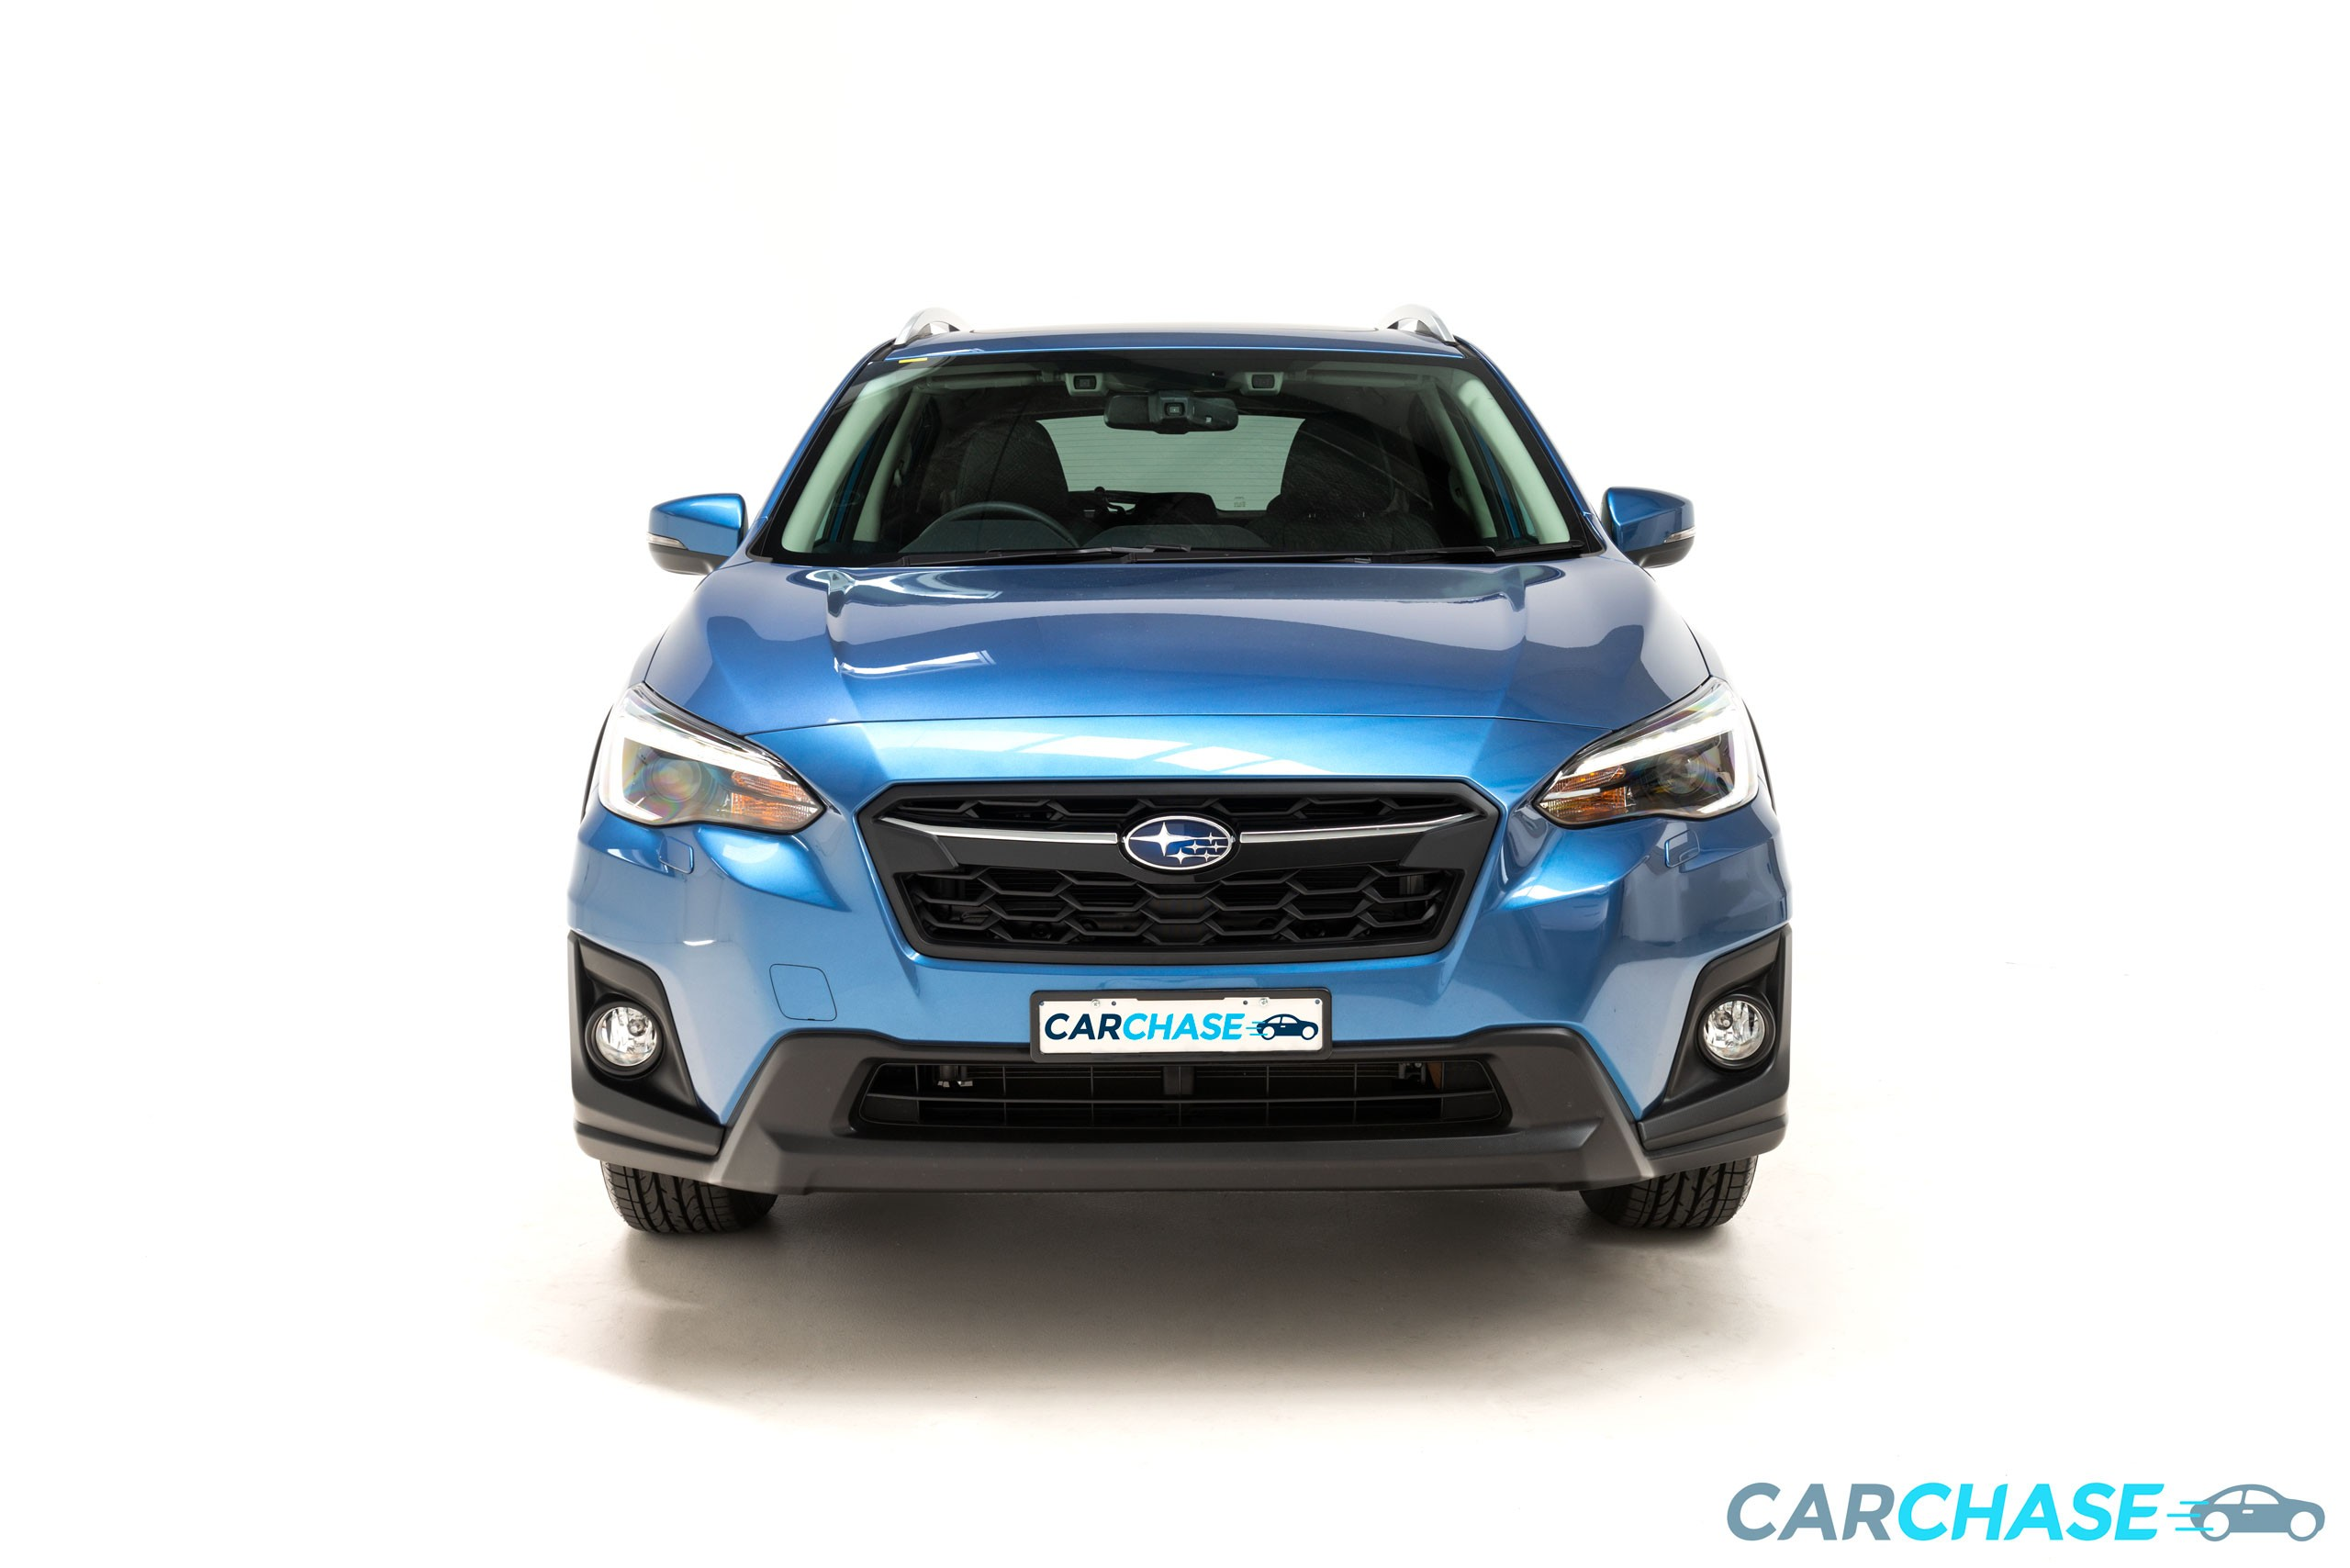 Image of front profile of 2018 Subaru XV 2.0i-S